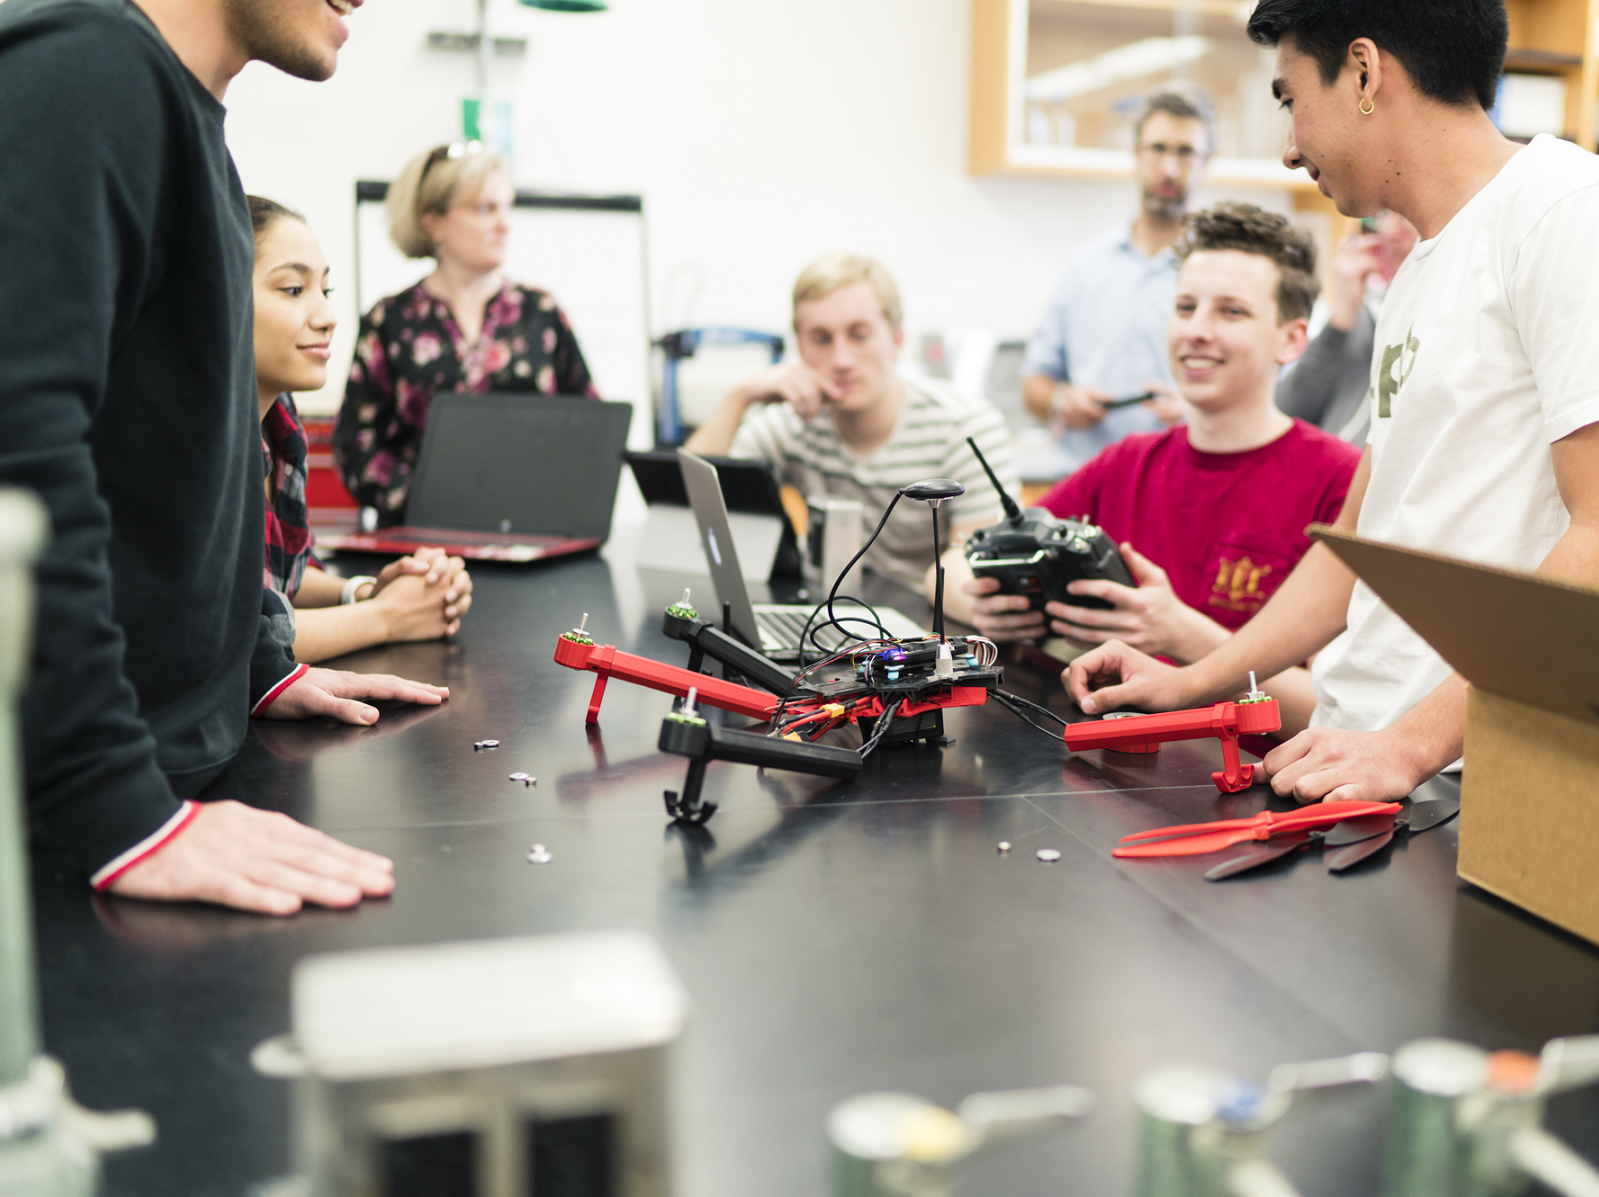 Chapman College Events Calendar February 2019 Schmid College of Science and Technology | Chapman University